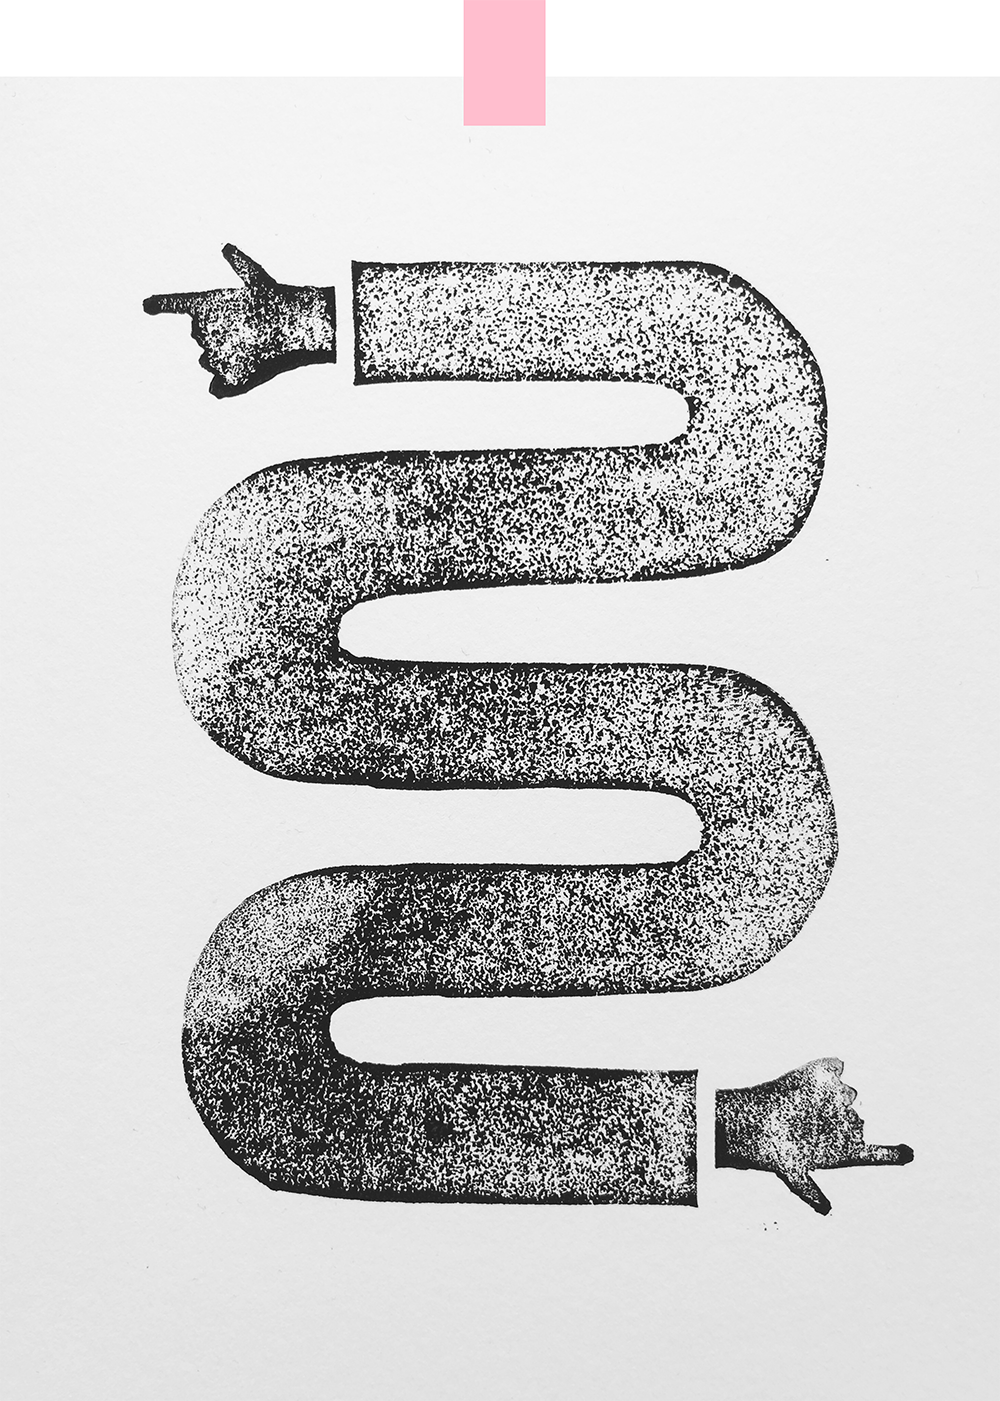 A hand pointing one way, with a squiggly line that ends in a hand pointing the other way at the bottom of the page. Black on a white background, with a textured, printed quality to it.